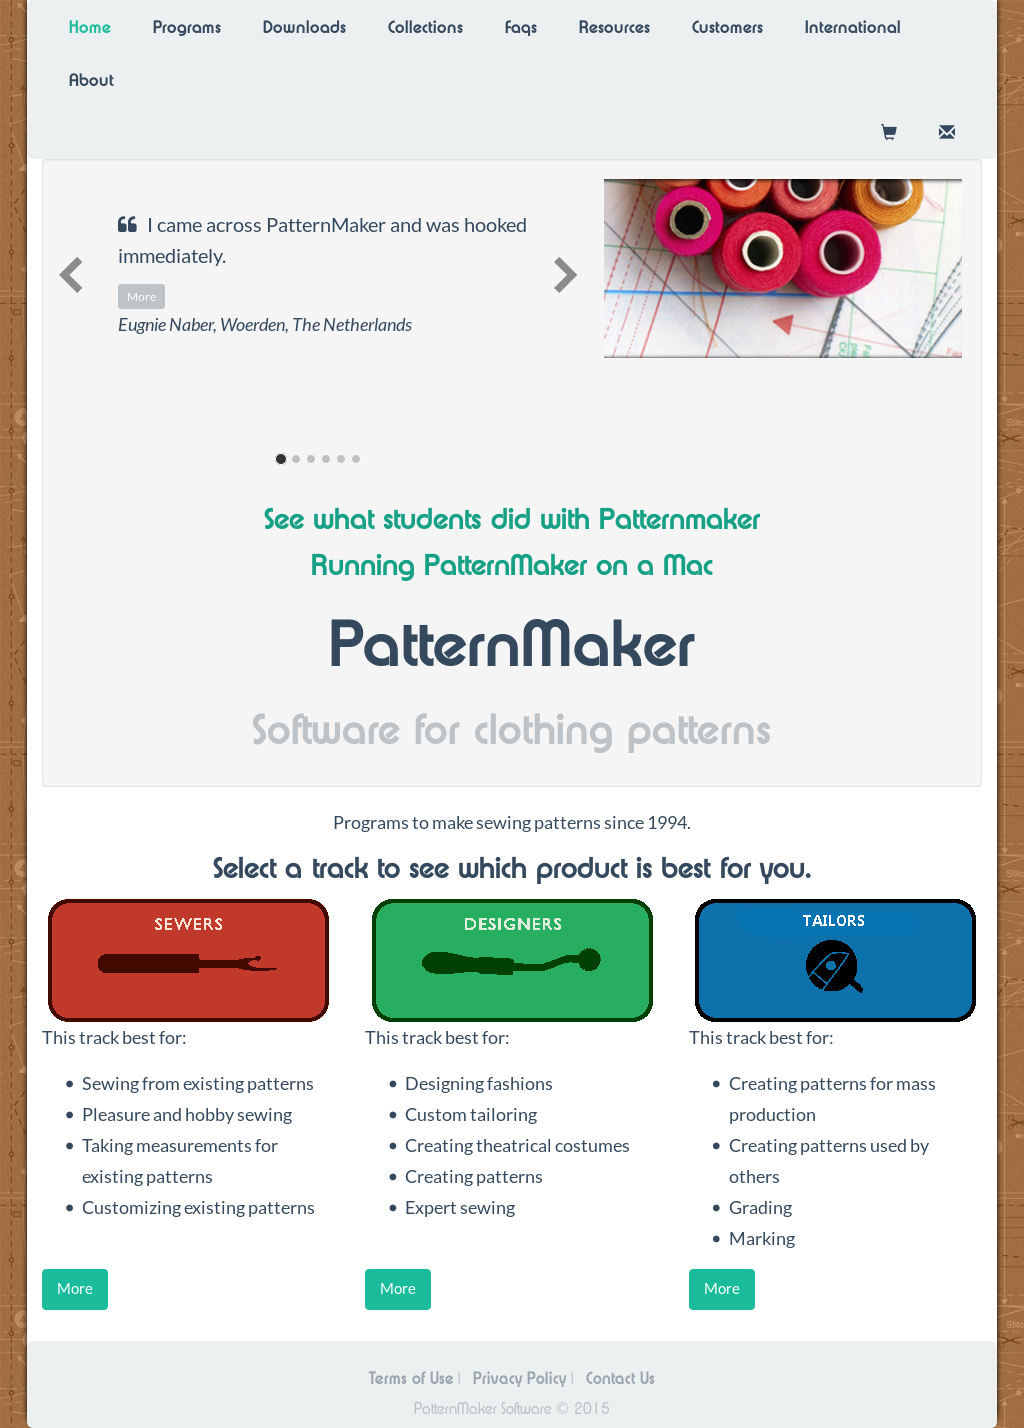 Patternmaker Software Competitors, Revenue and Employees - Owler